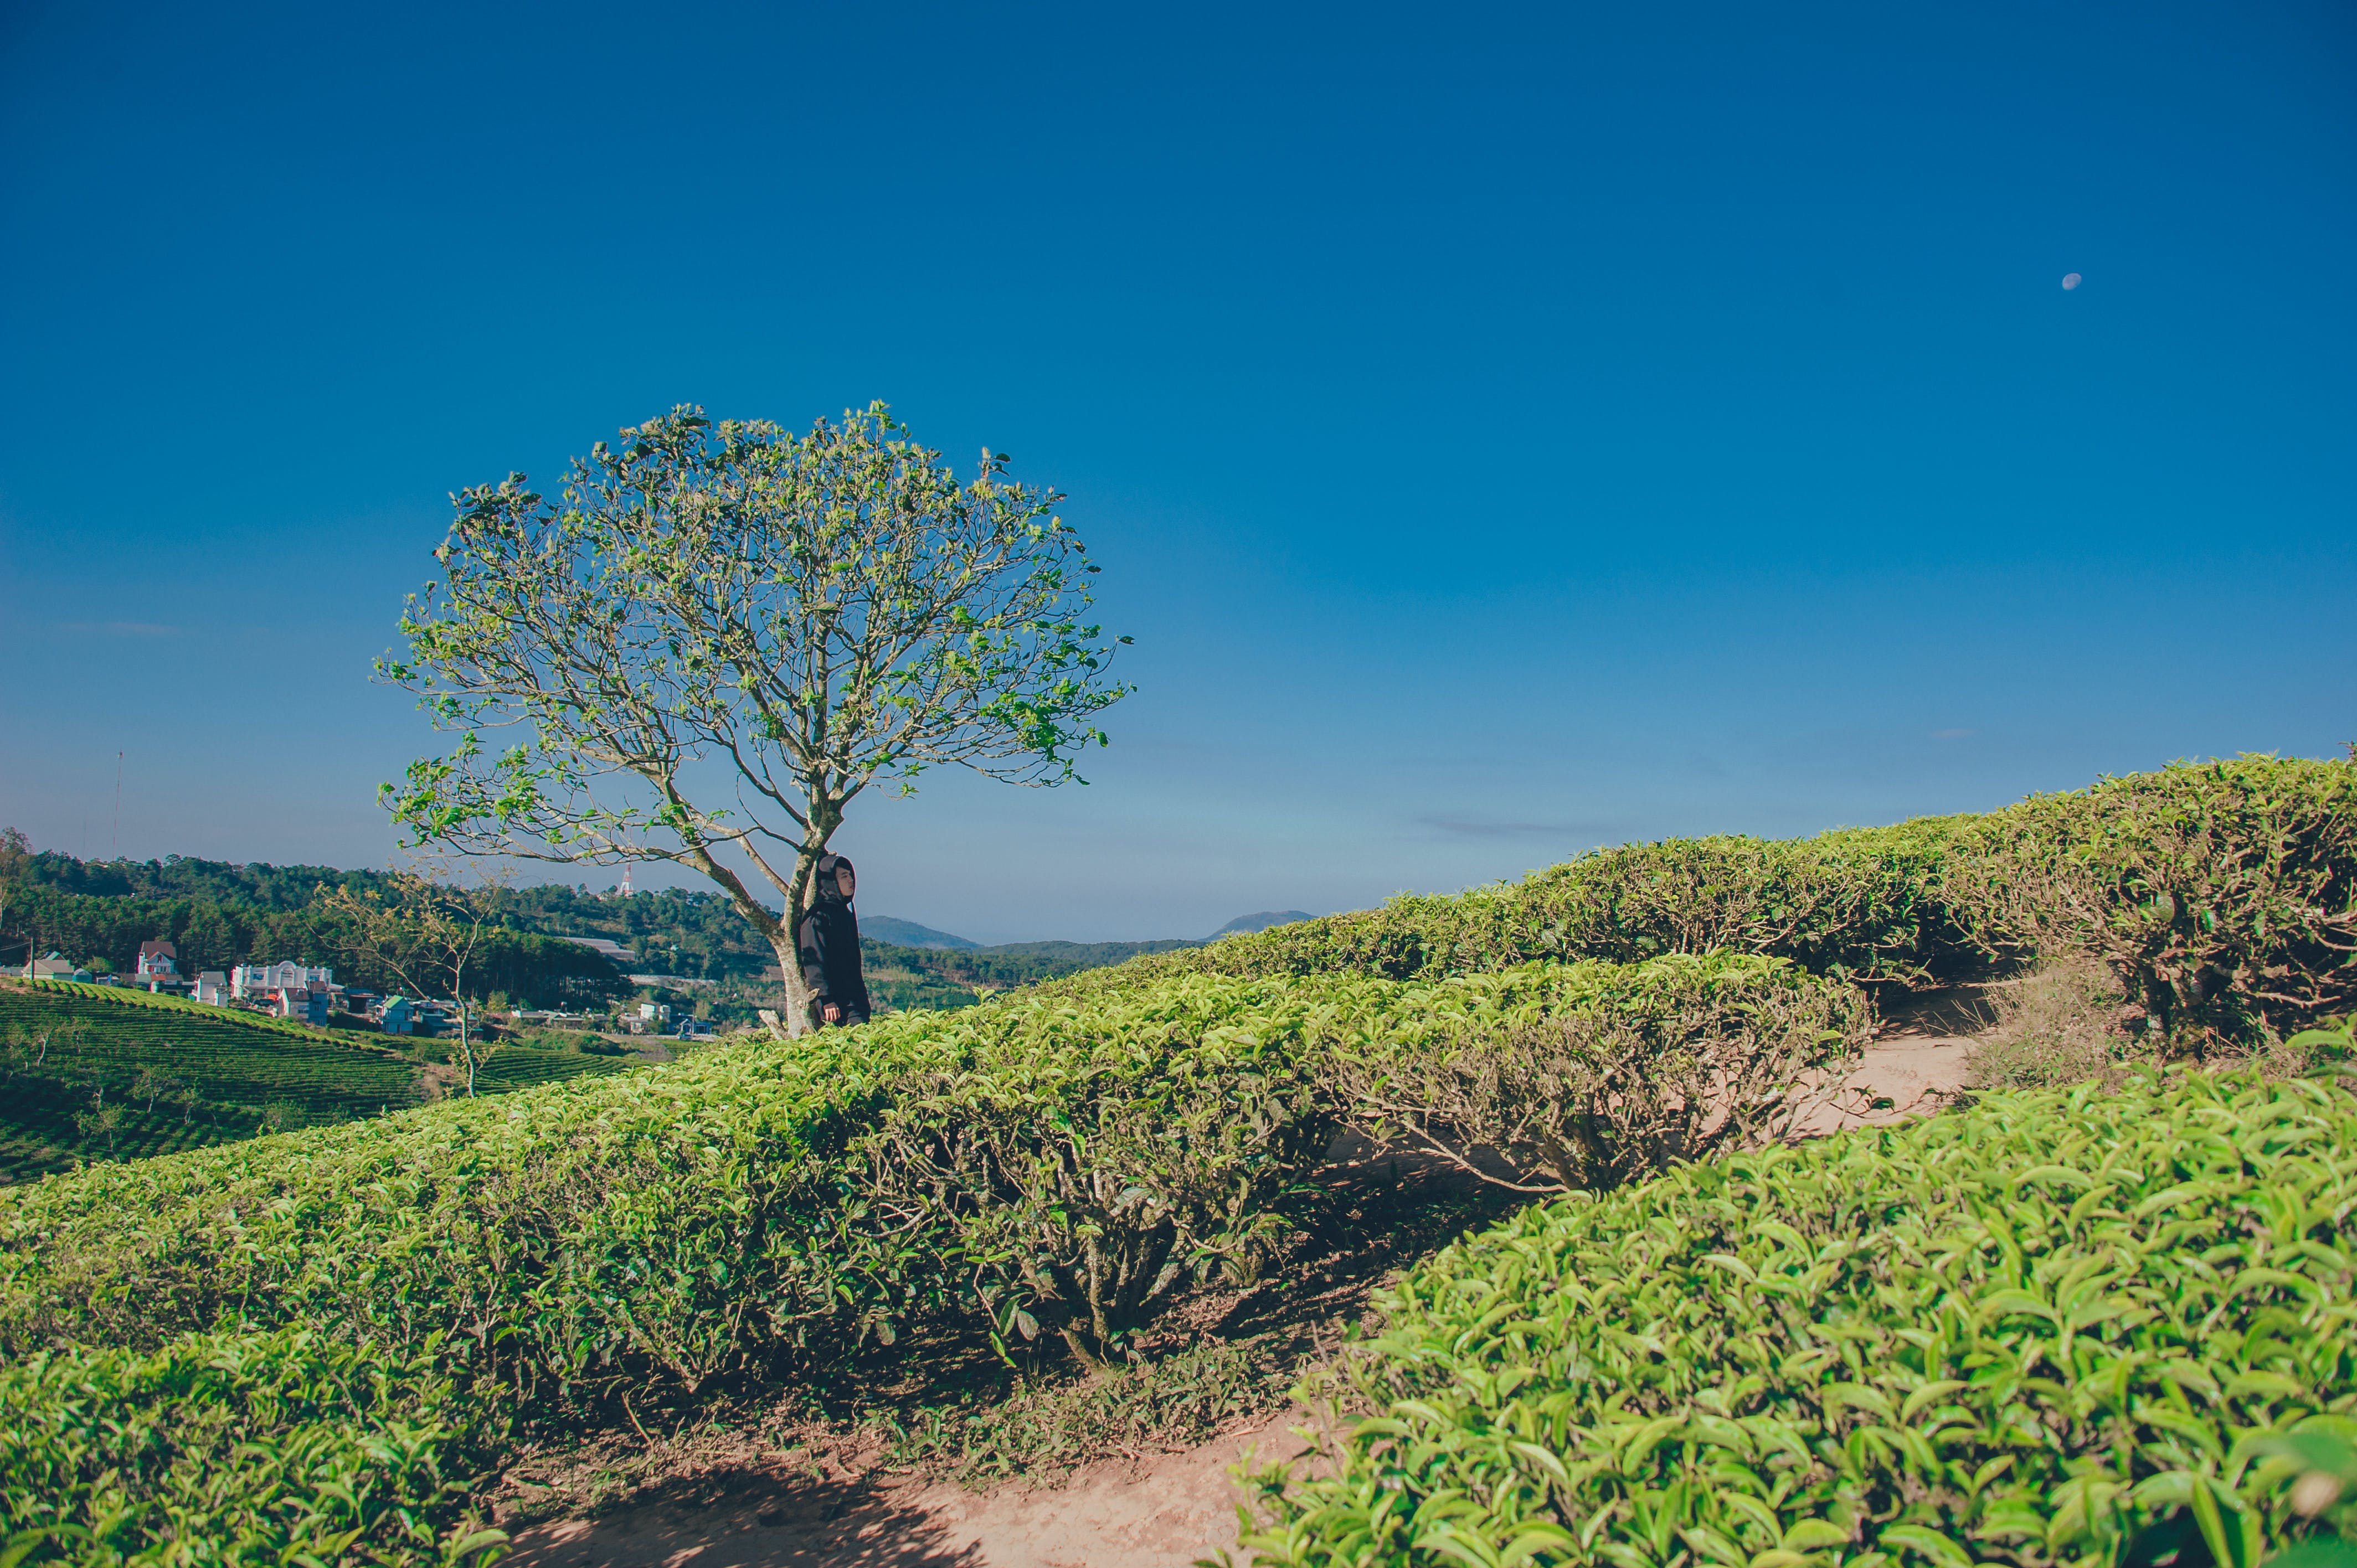 Landscape Photography of Green Tree